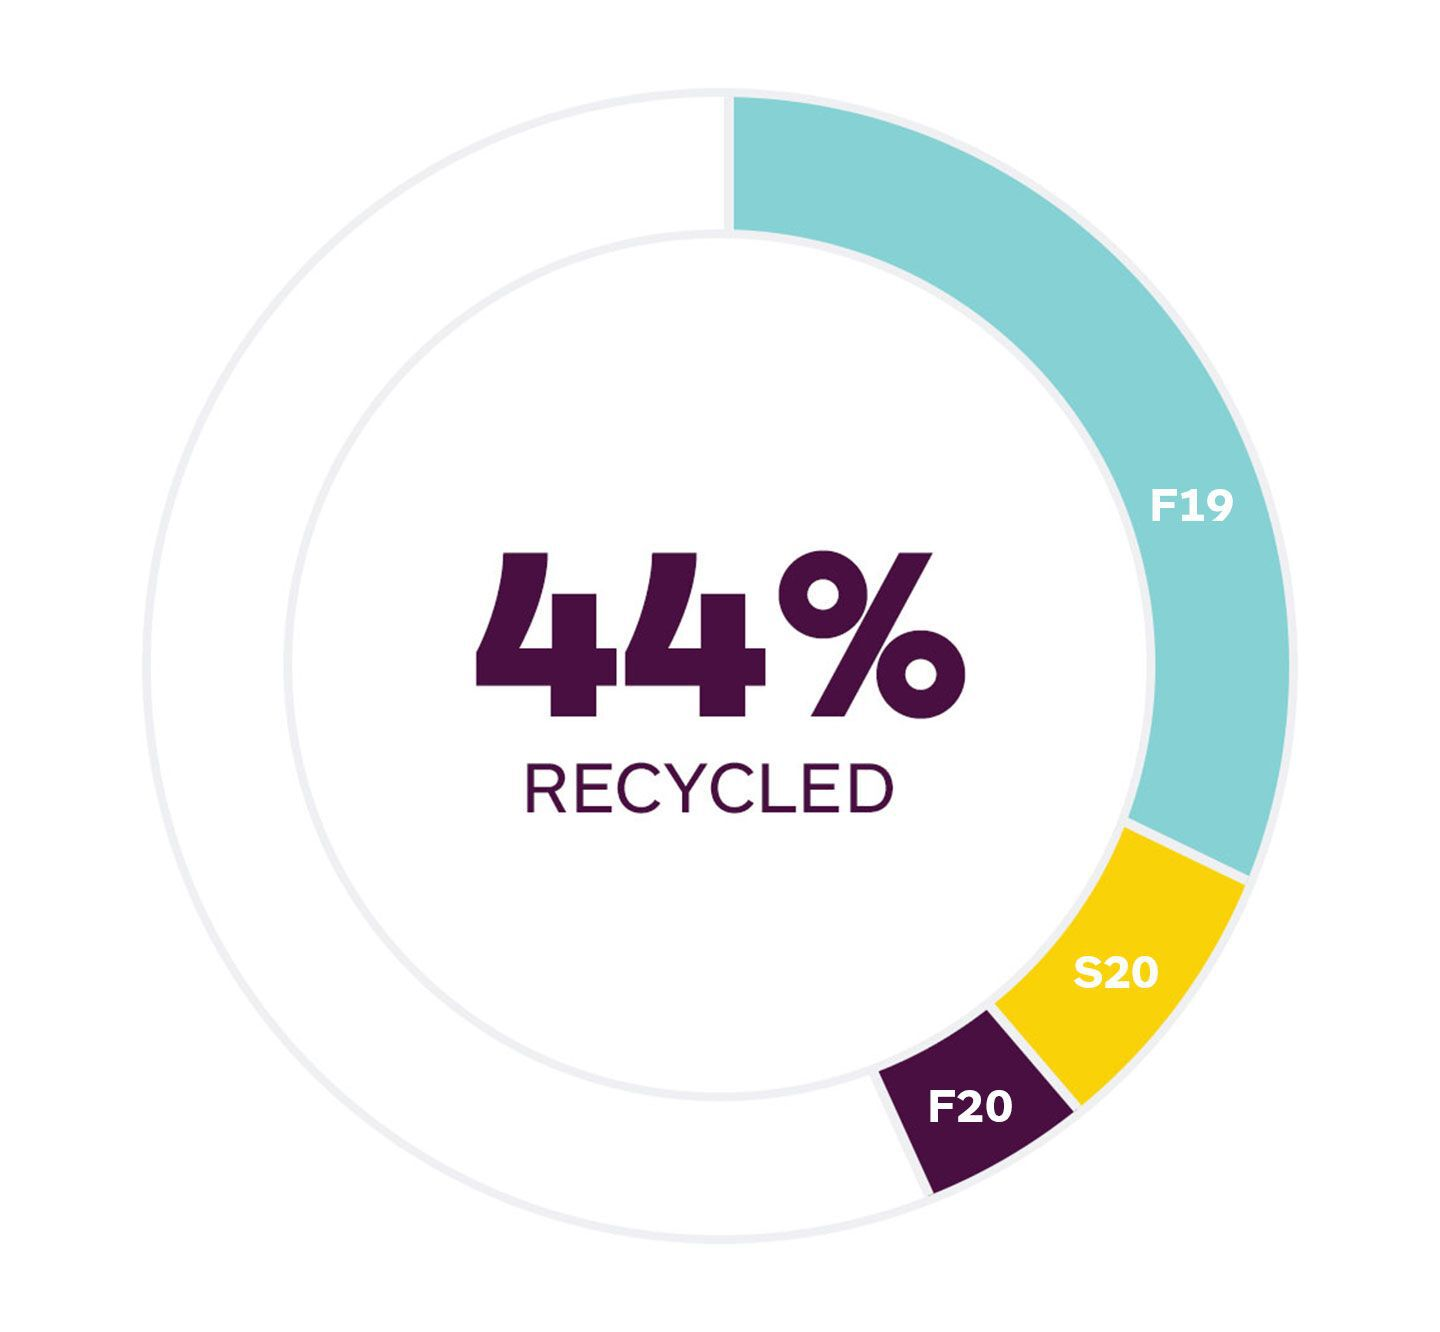 44% Recycled